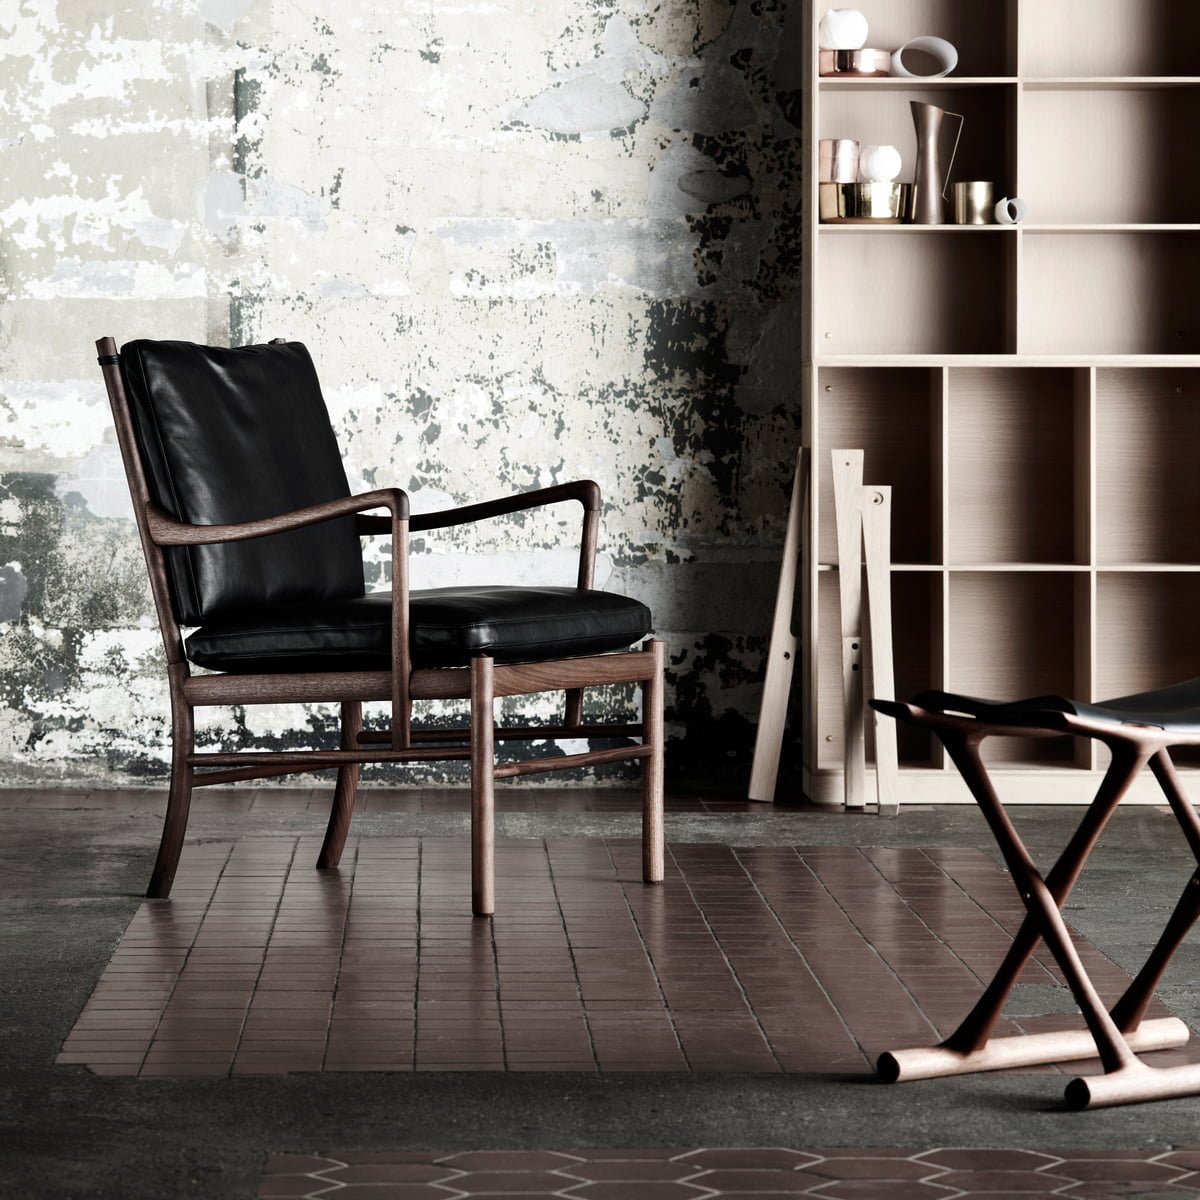 ow149 colonial chair by carl hansen in the shop. Black Bedroom Furniture Sets. Home Design Ideas